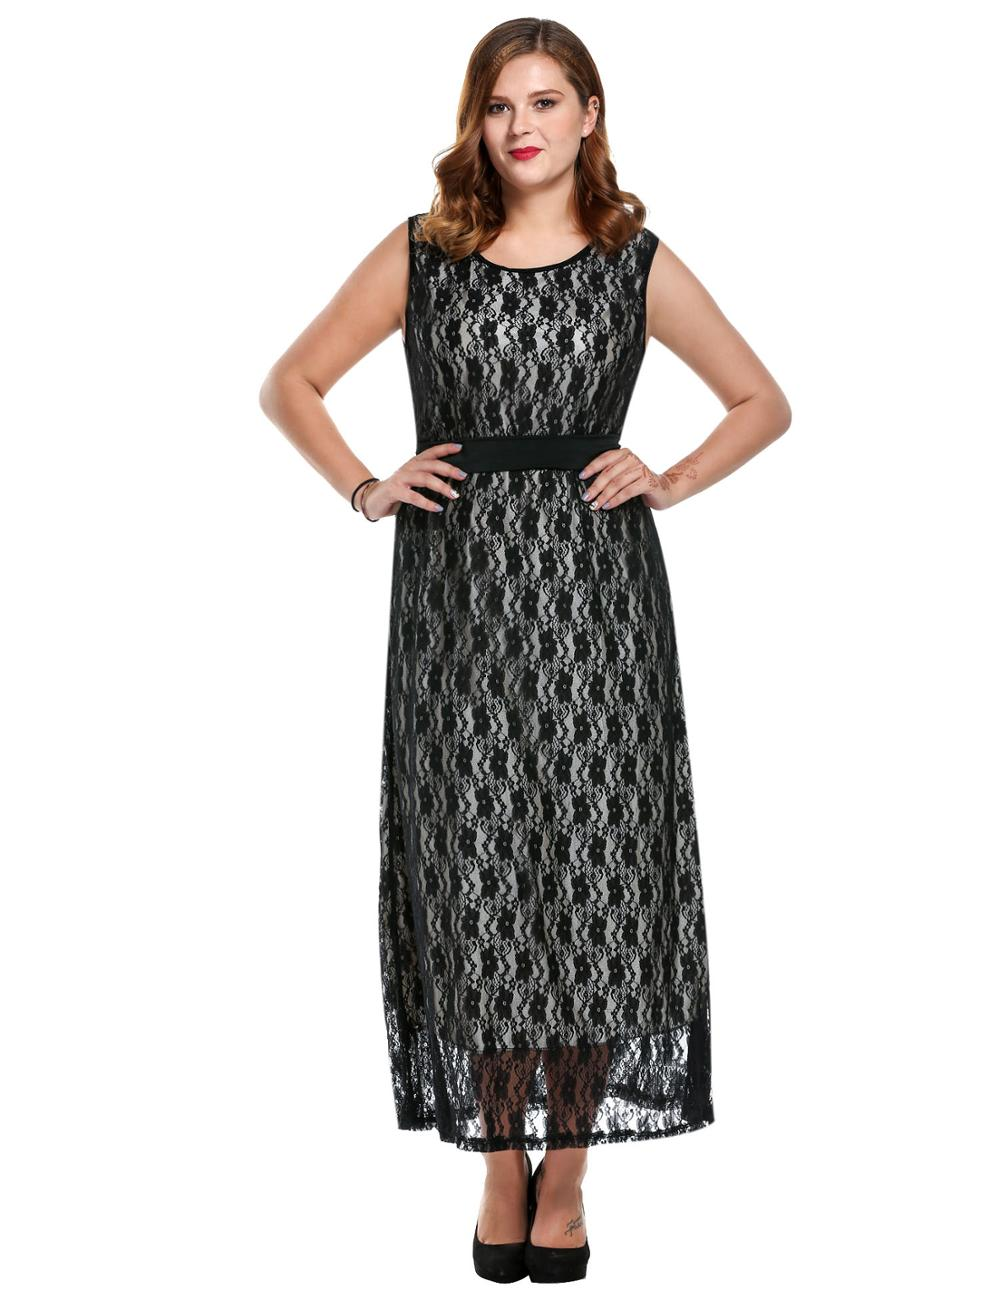 Women Plus Sizes Round Neck Sleeveless High Waist Belted Floral Lace Maxi Dress AMH005761